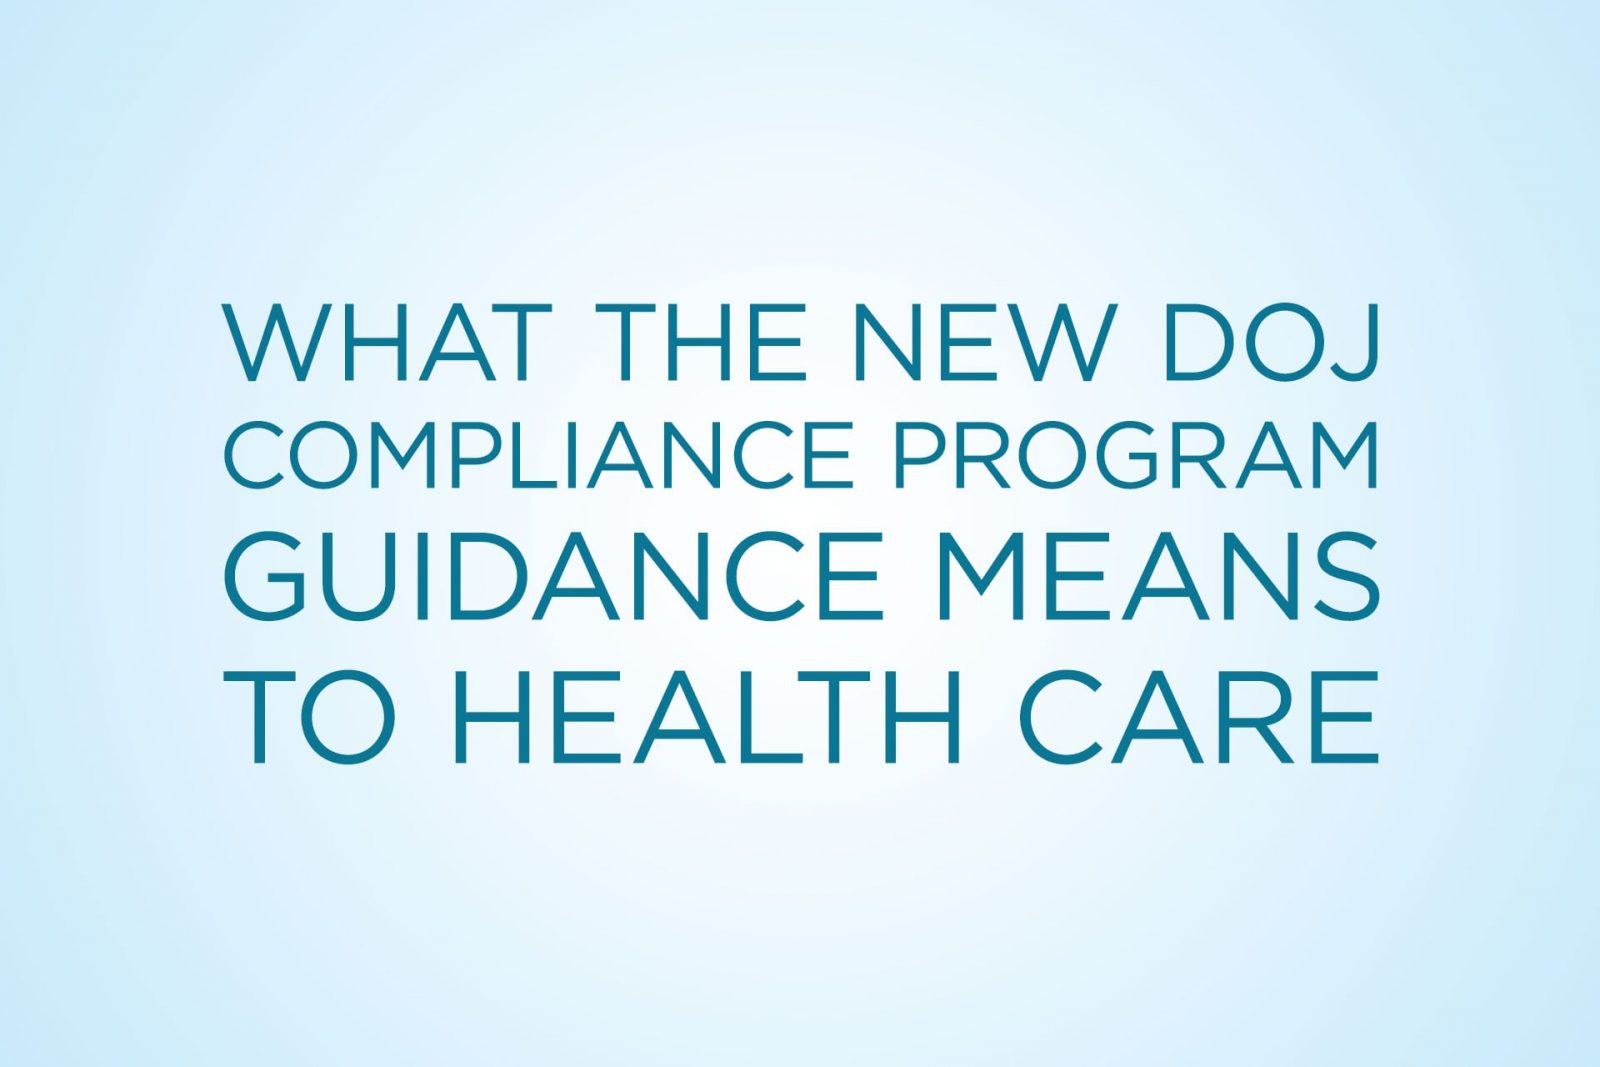 What the New DOJ Compliance Program Guidance Means to Health Care